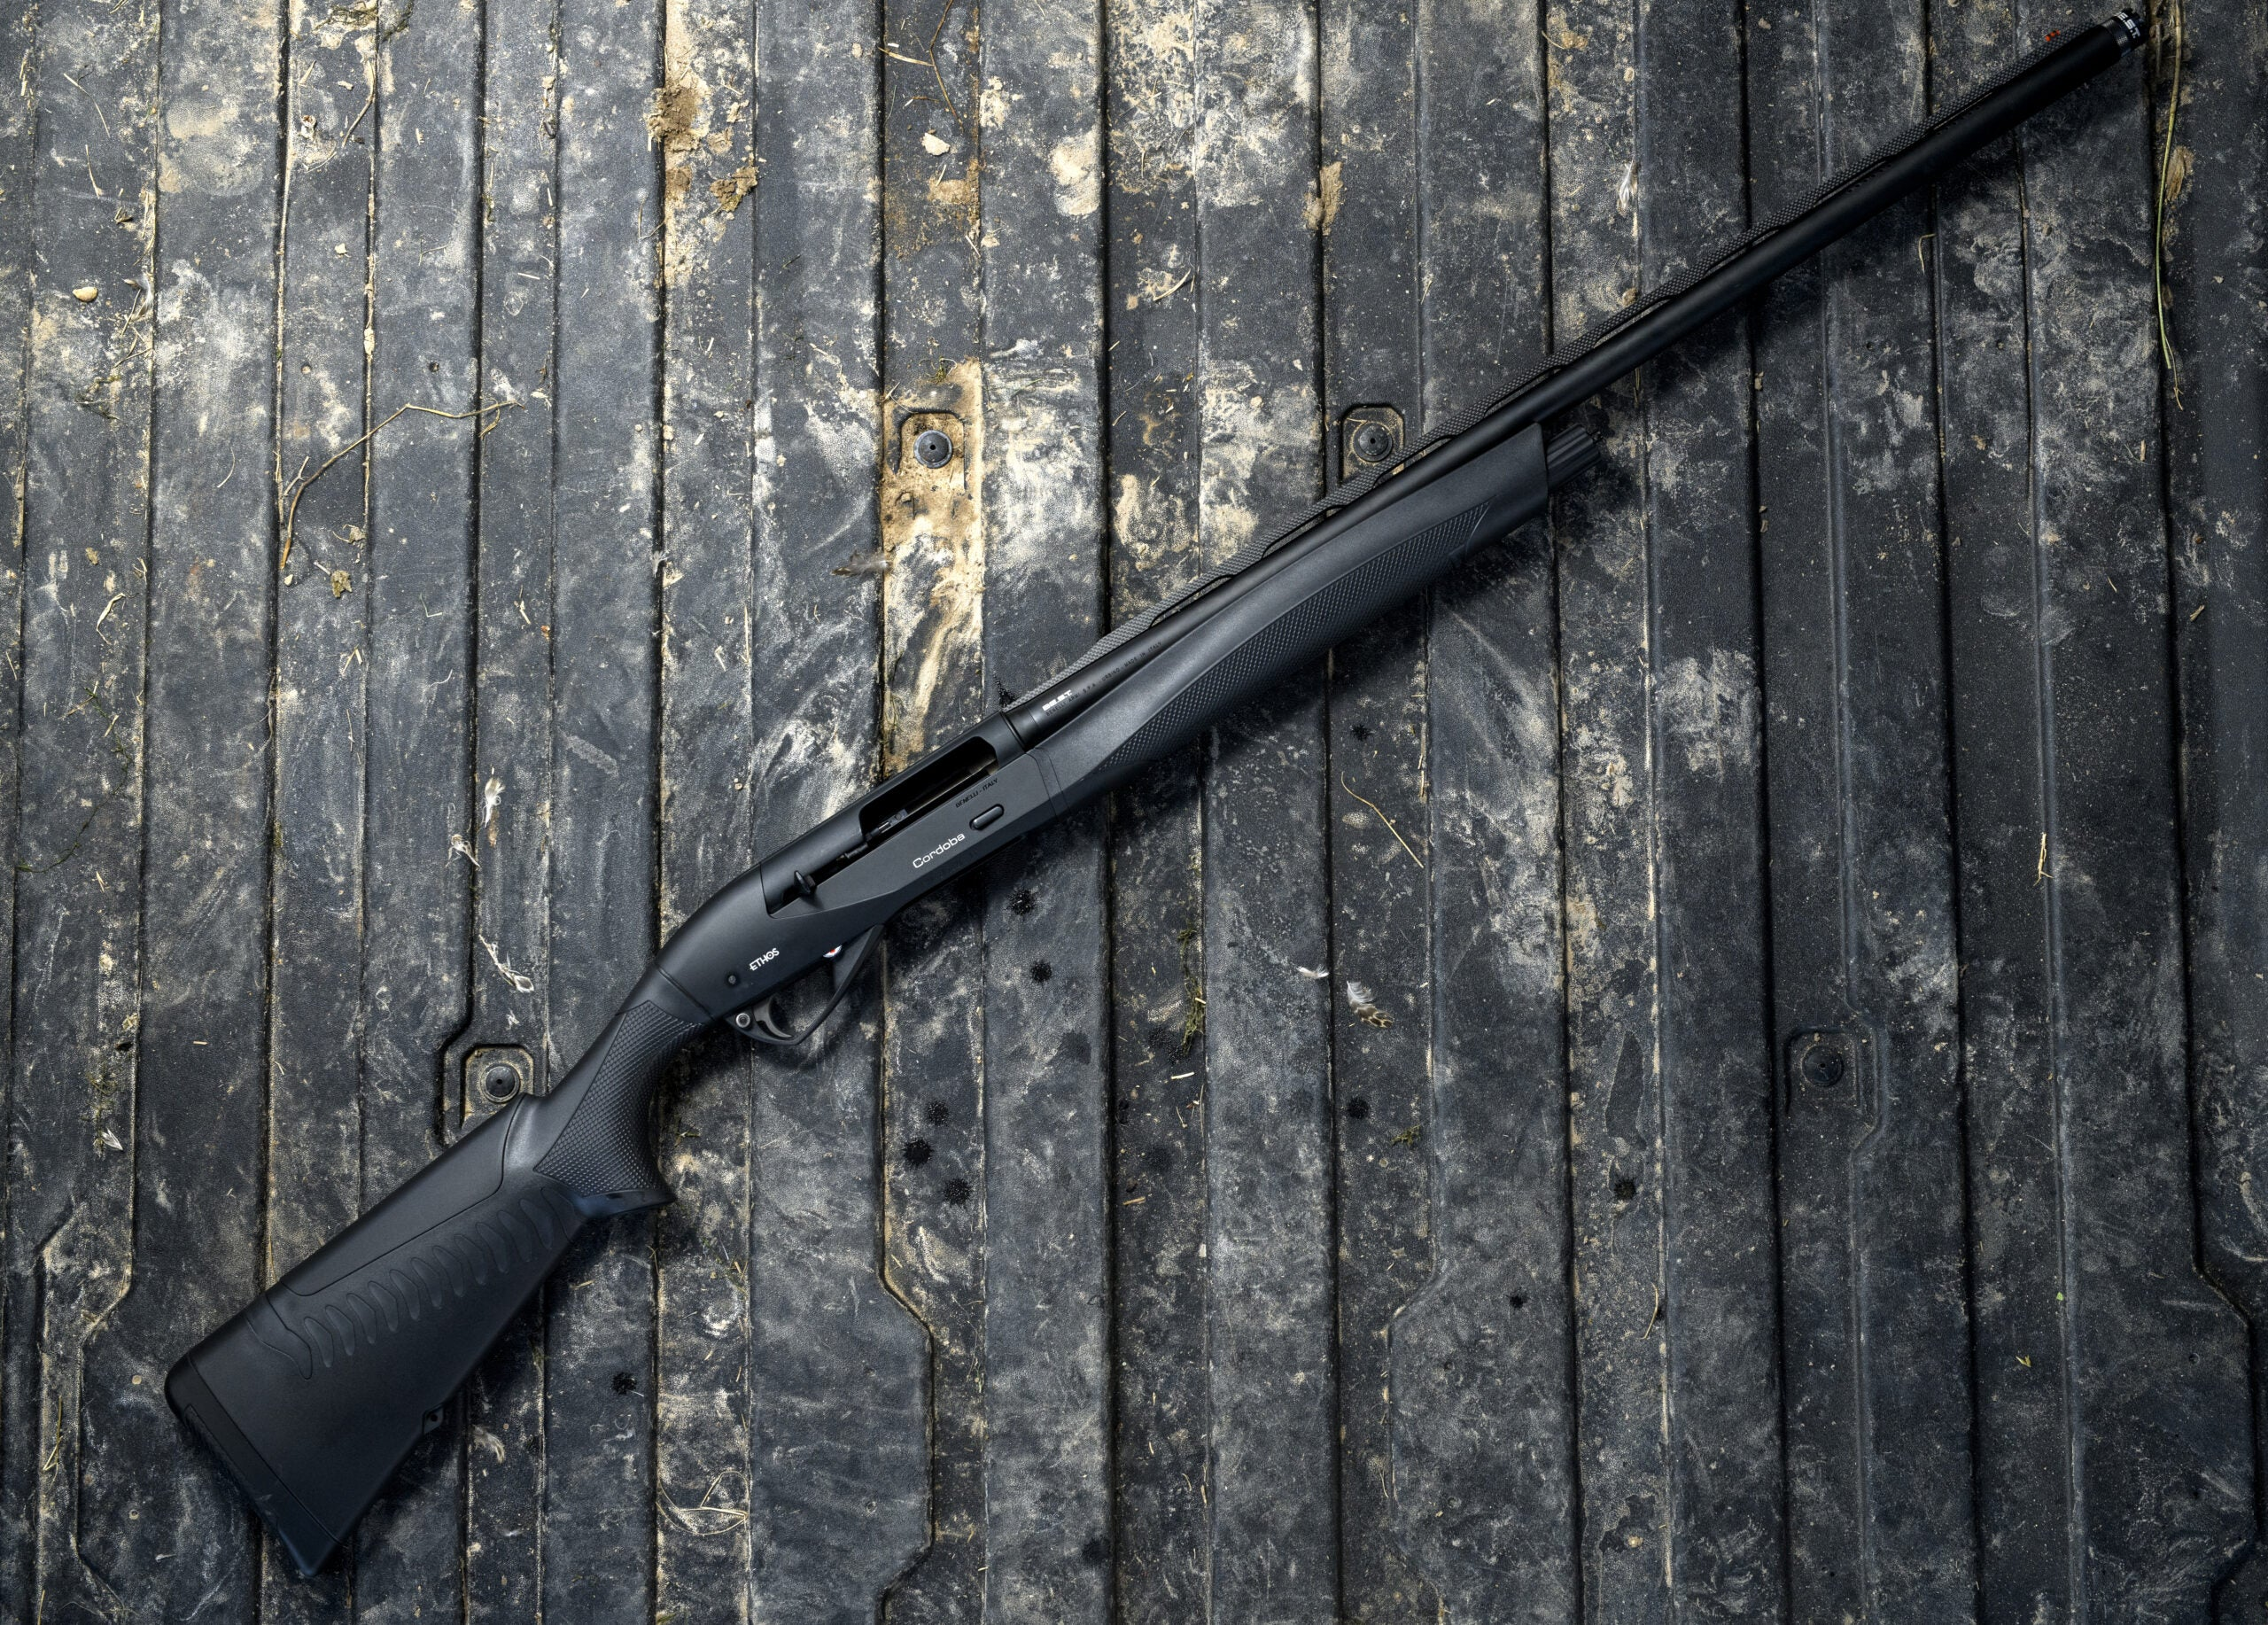 The Benelli Ethos is the best duck hunting shotgun